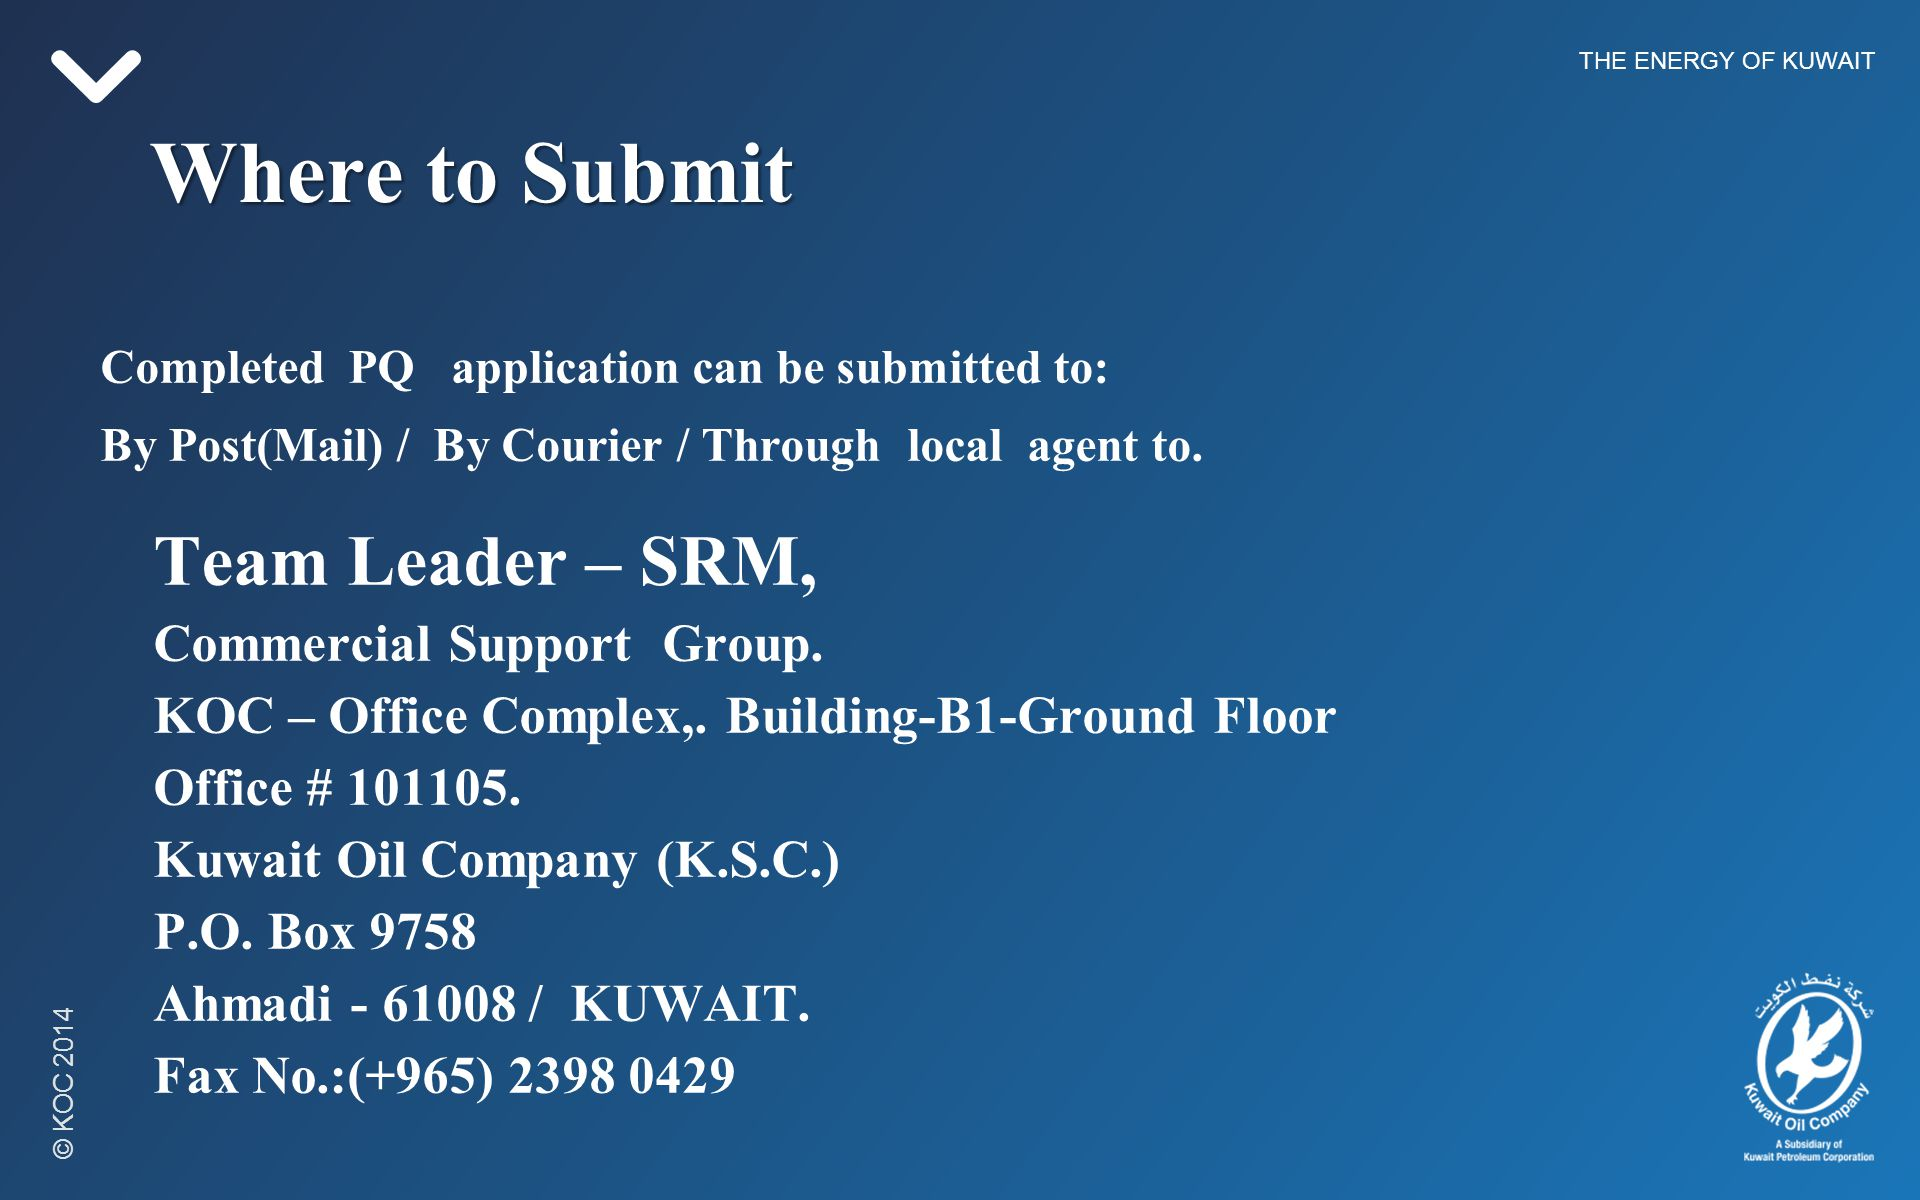 THE ENERGY OF KUWAIT  - ppt video online download